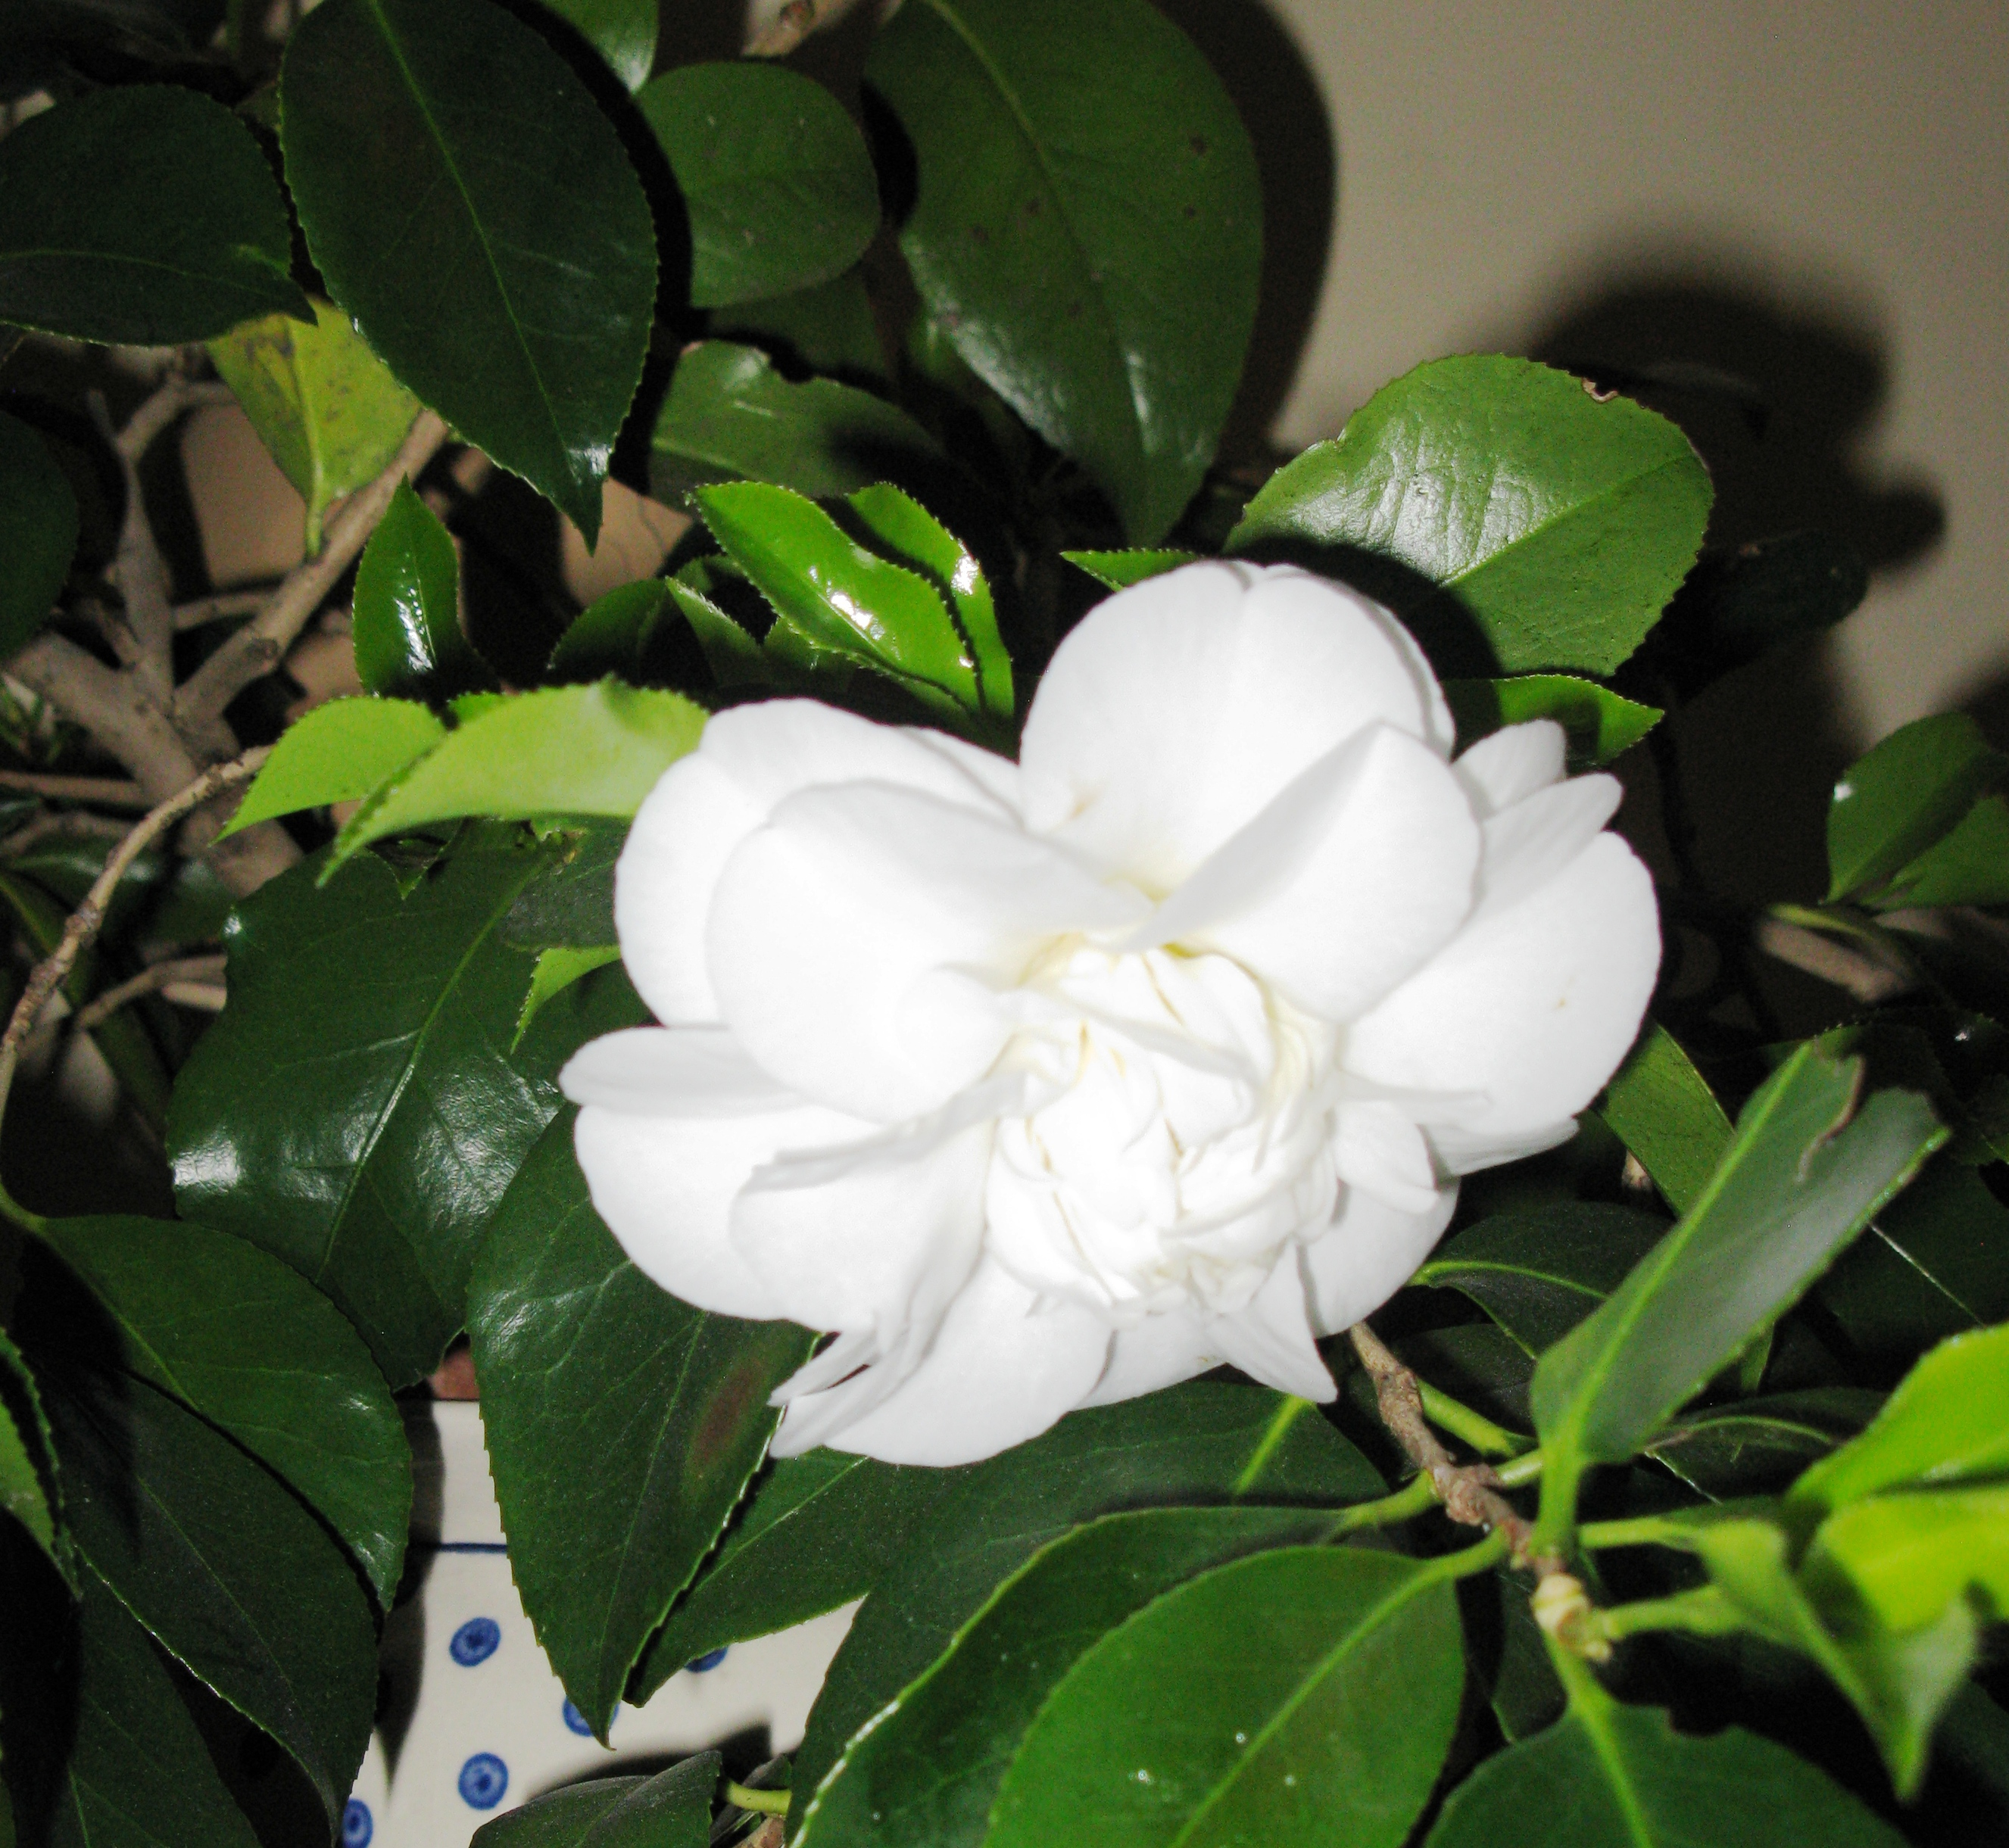 camellia still in flower photo l alexander - White Flowering House Plants